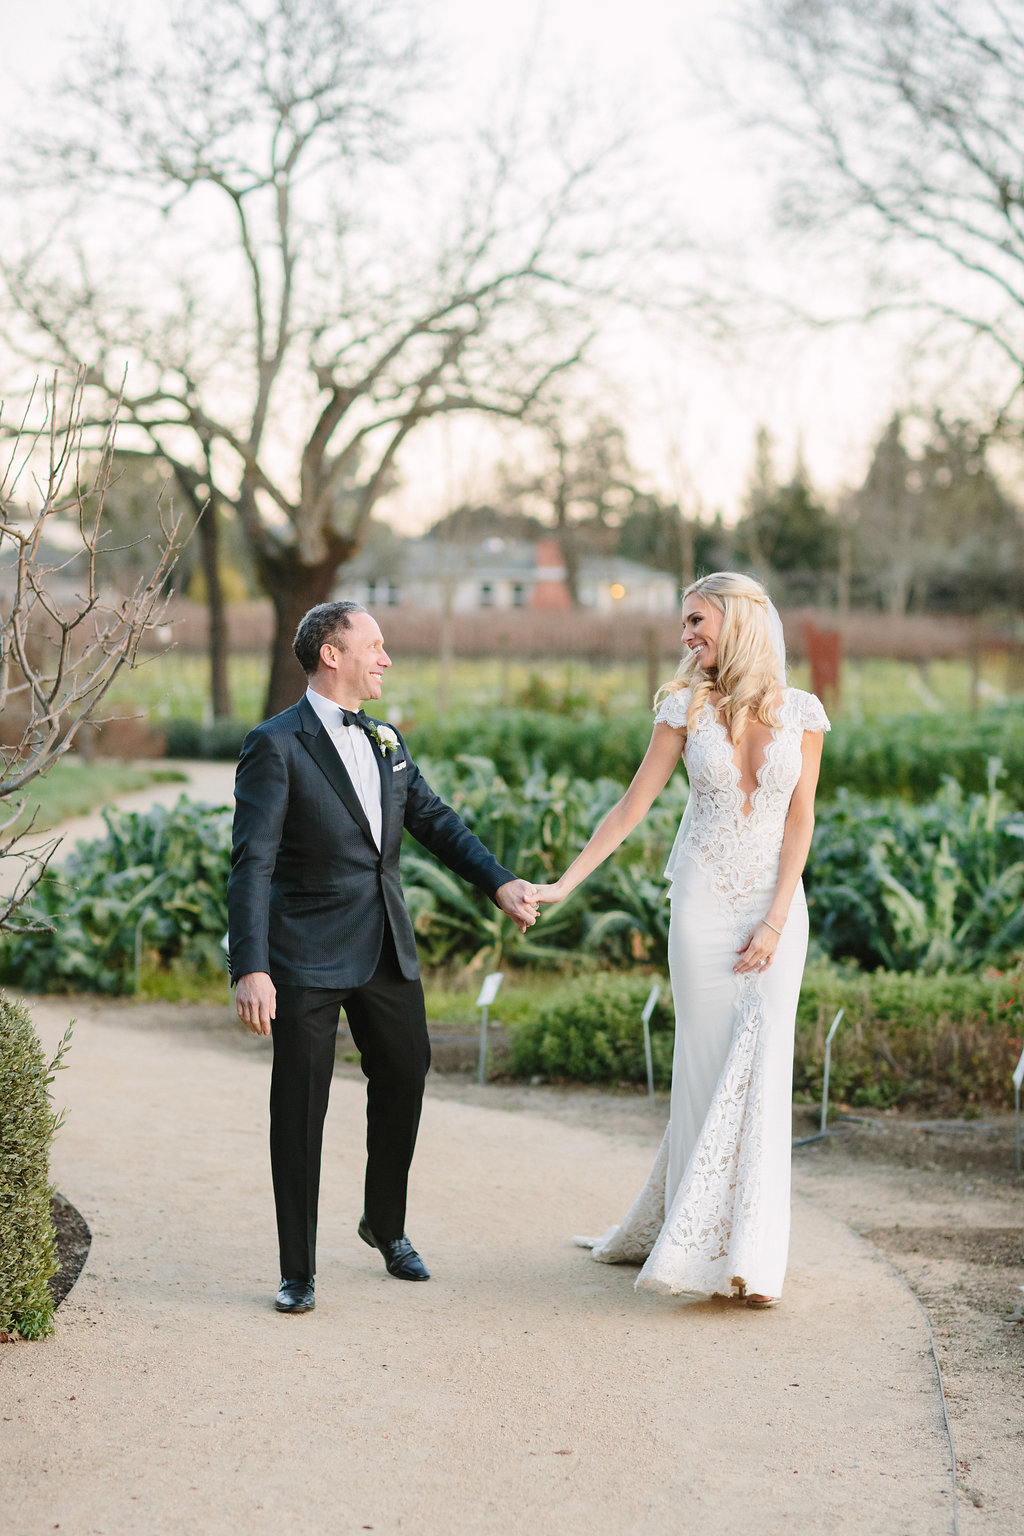 LCphoto-AB-elope-preview-52.jpg